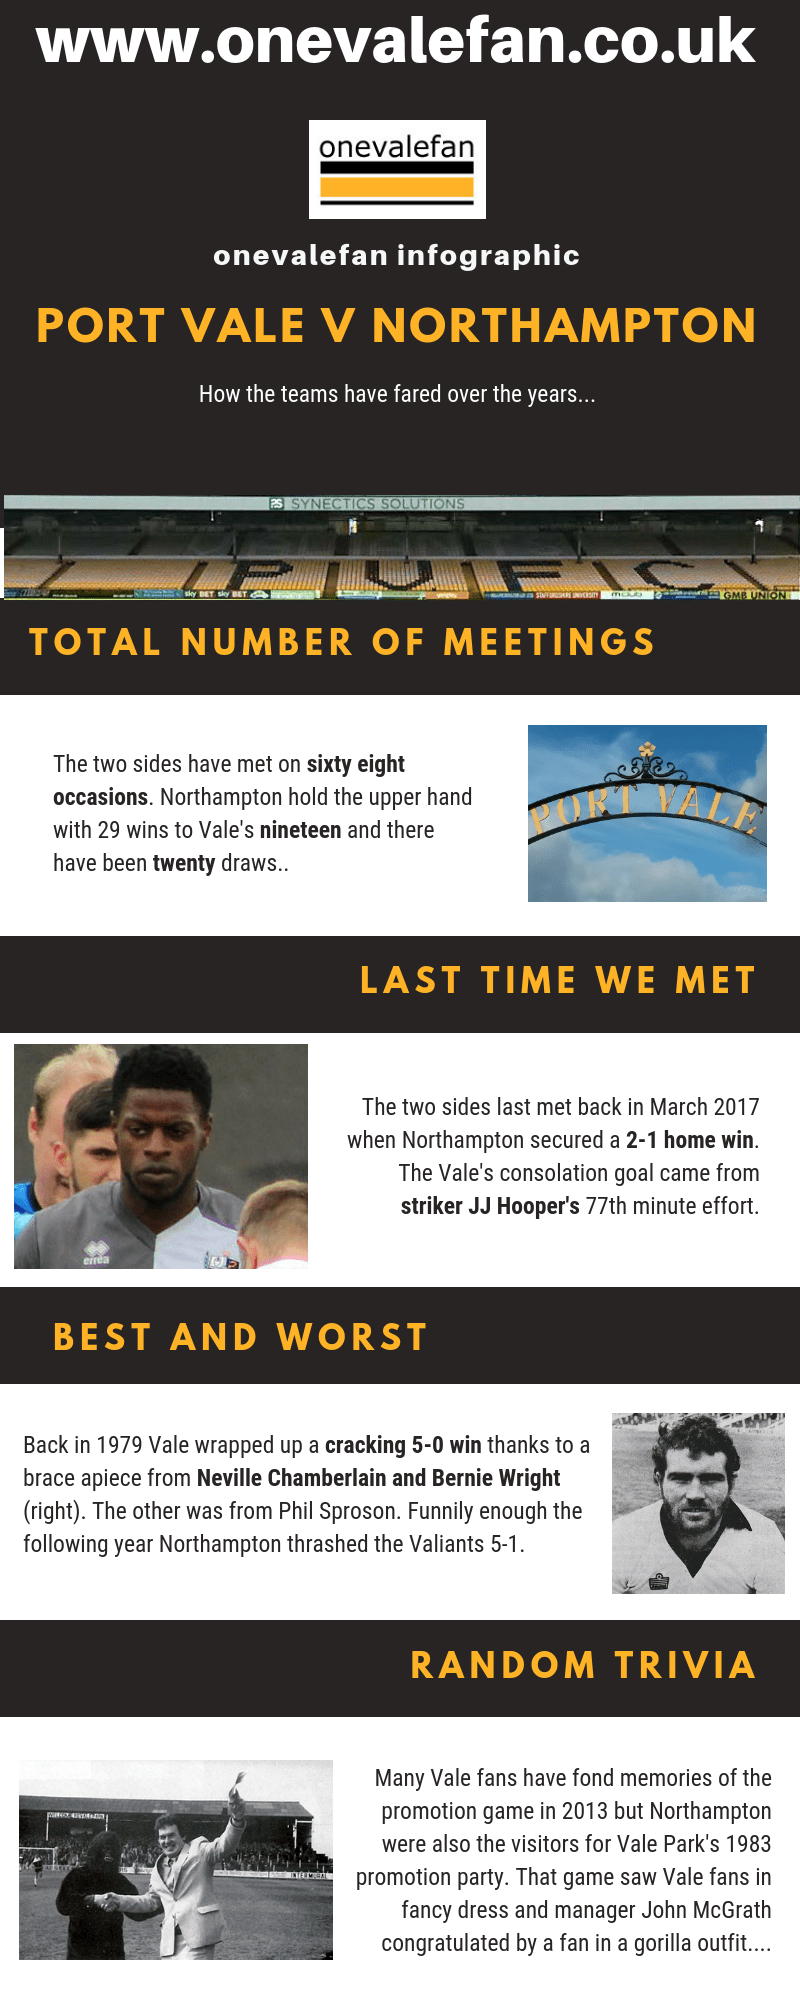 Port Vale v Northampton infographic - onevalefan.co.uk